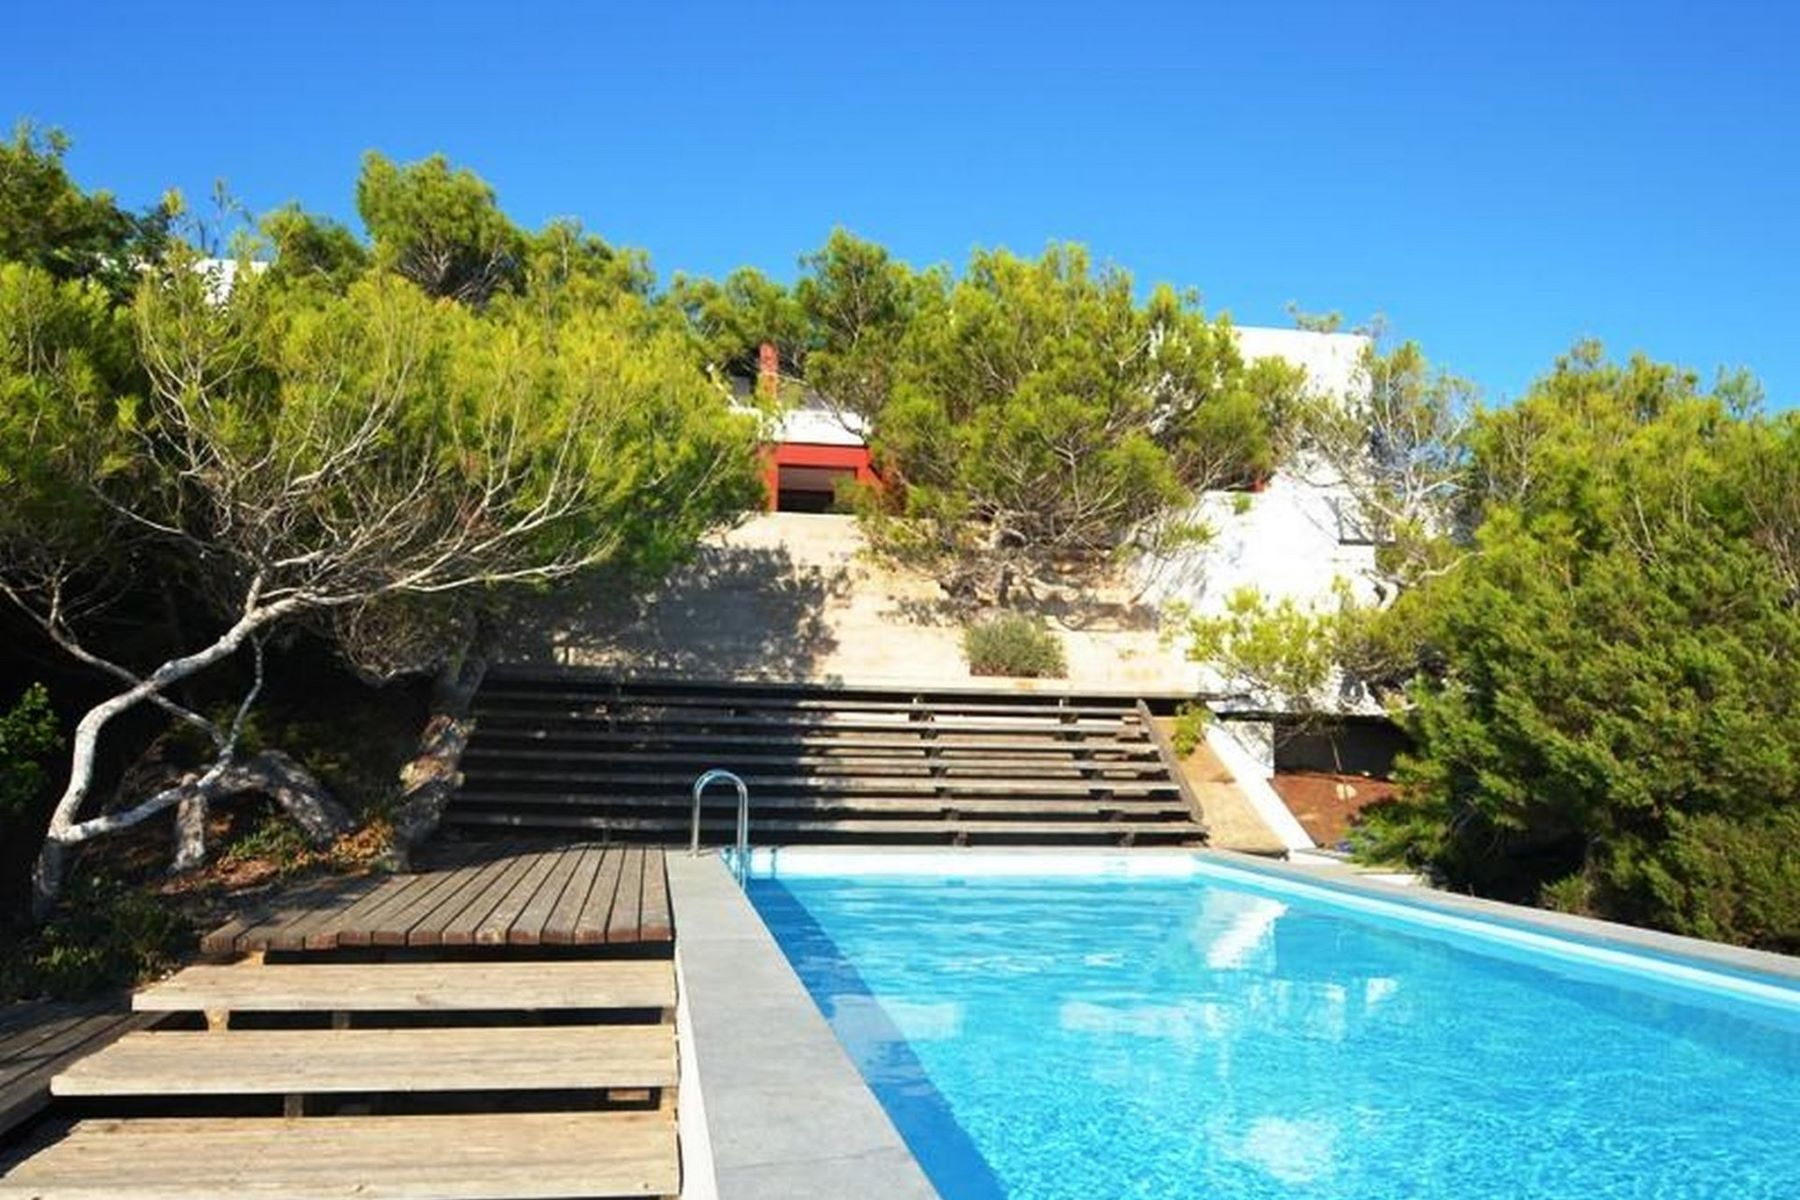 Single Family Home for Rent at Spectacular Water Front Villa in Es Ram, Formentera for rent Formentera, Balearic Islands Spain